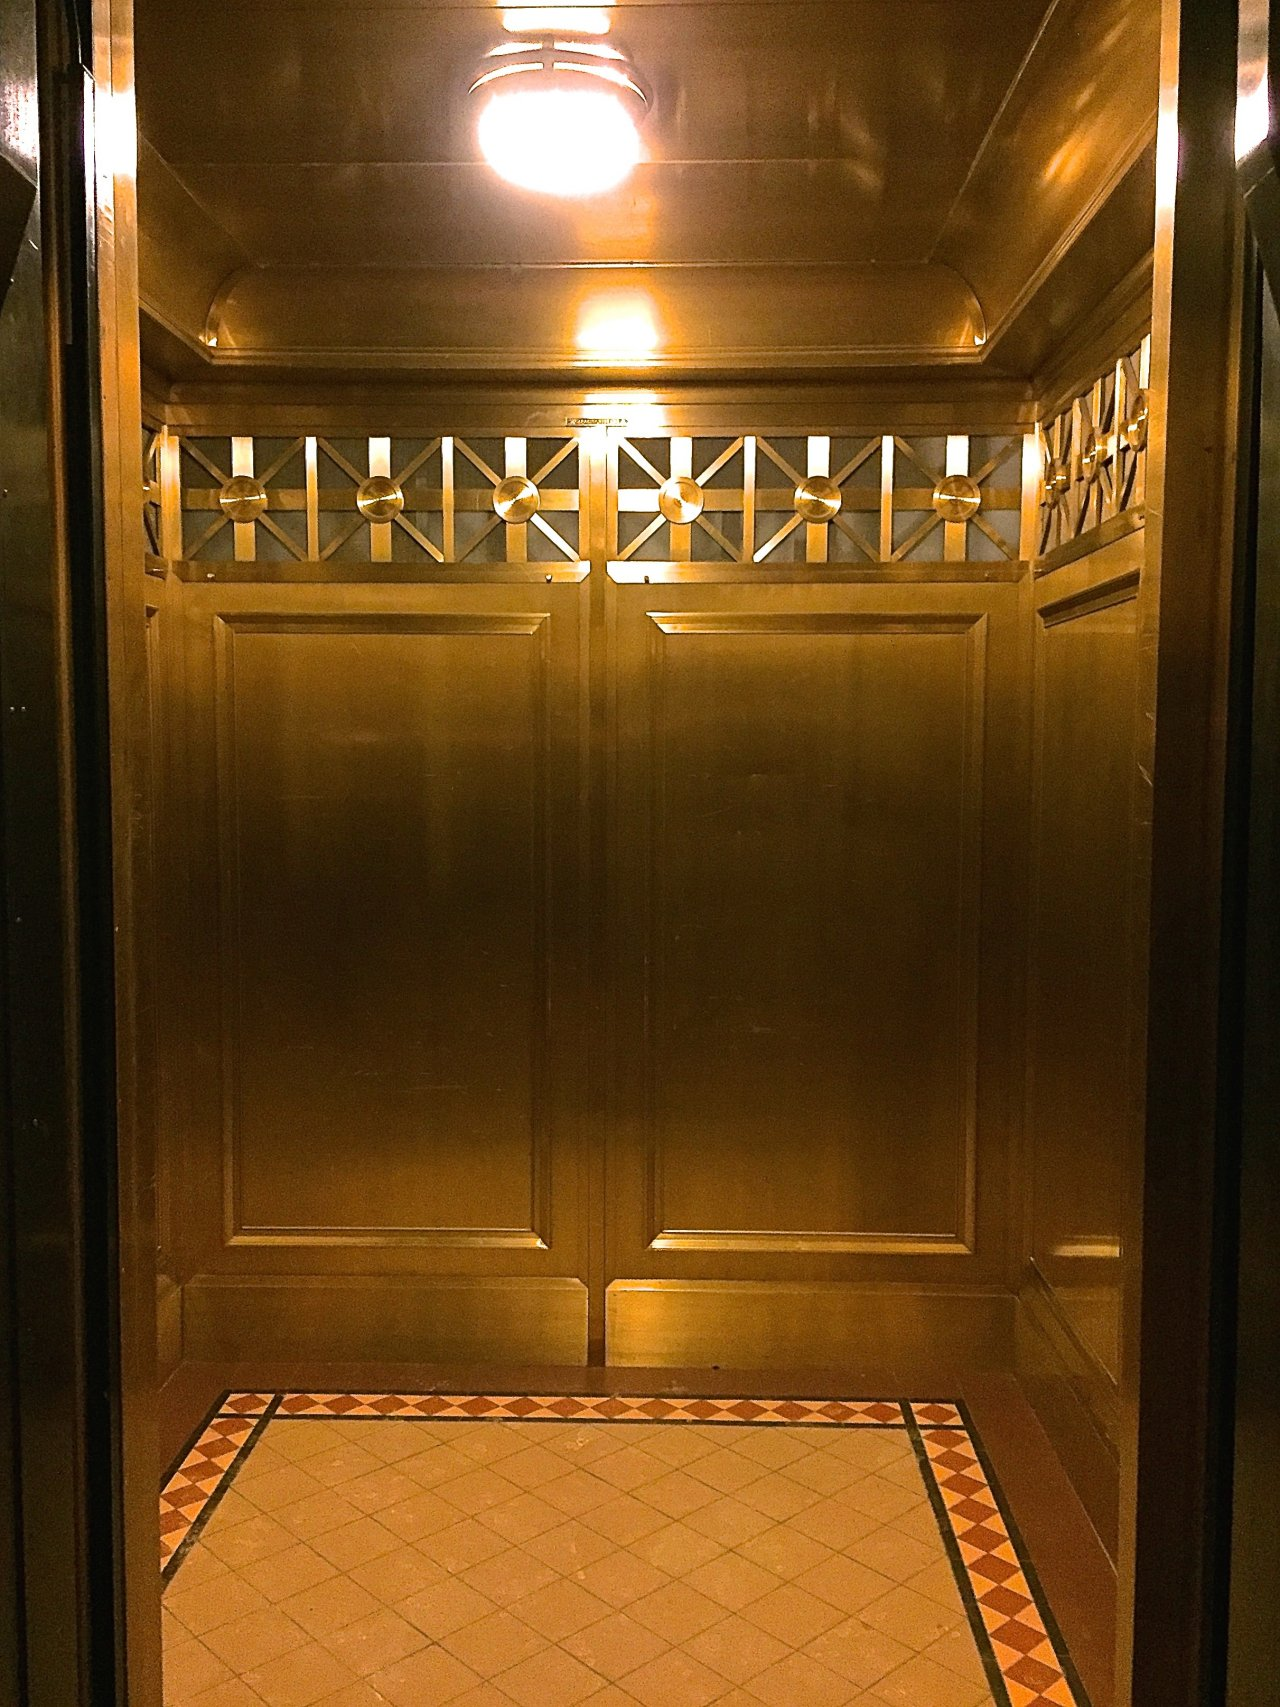 Fabricated Bronze Grecian Grills For Elevator Cab Keicher Metal Arts